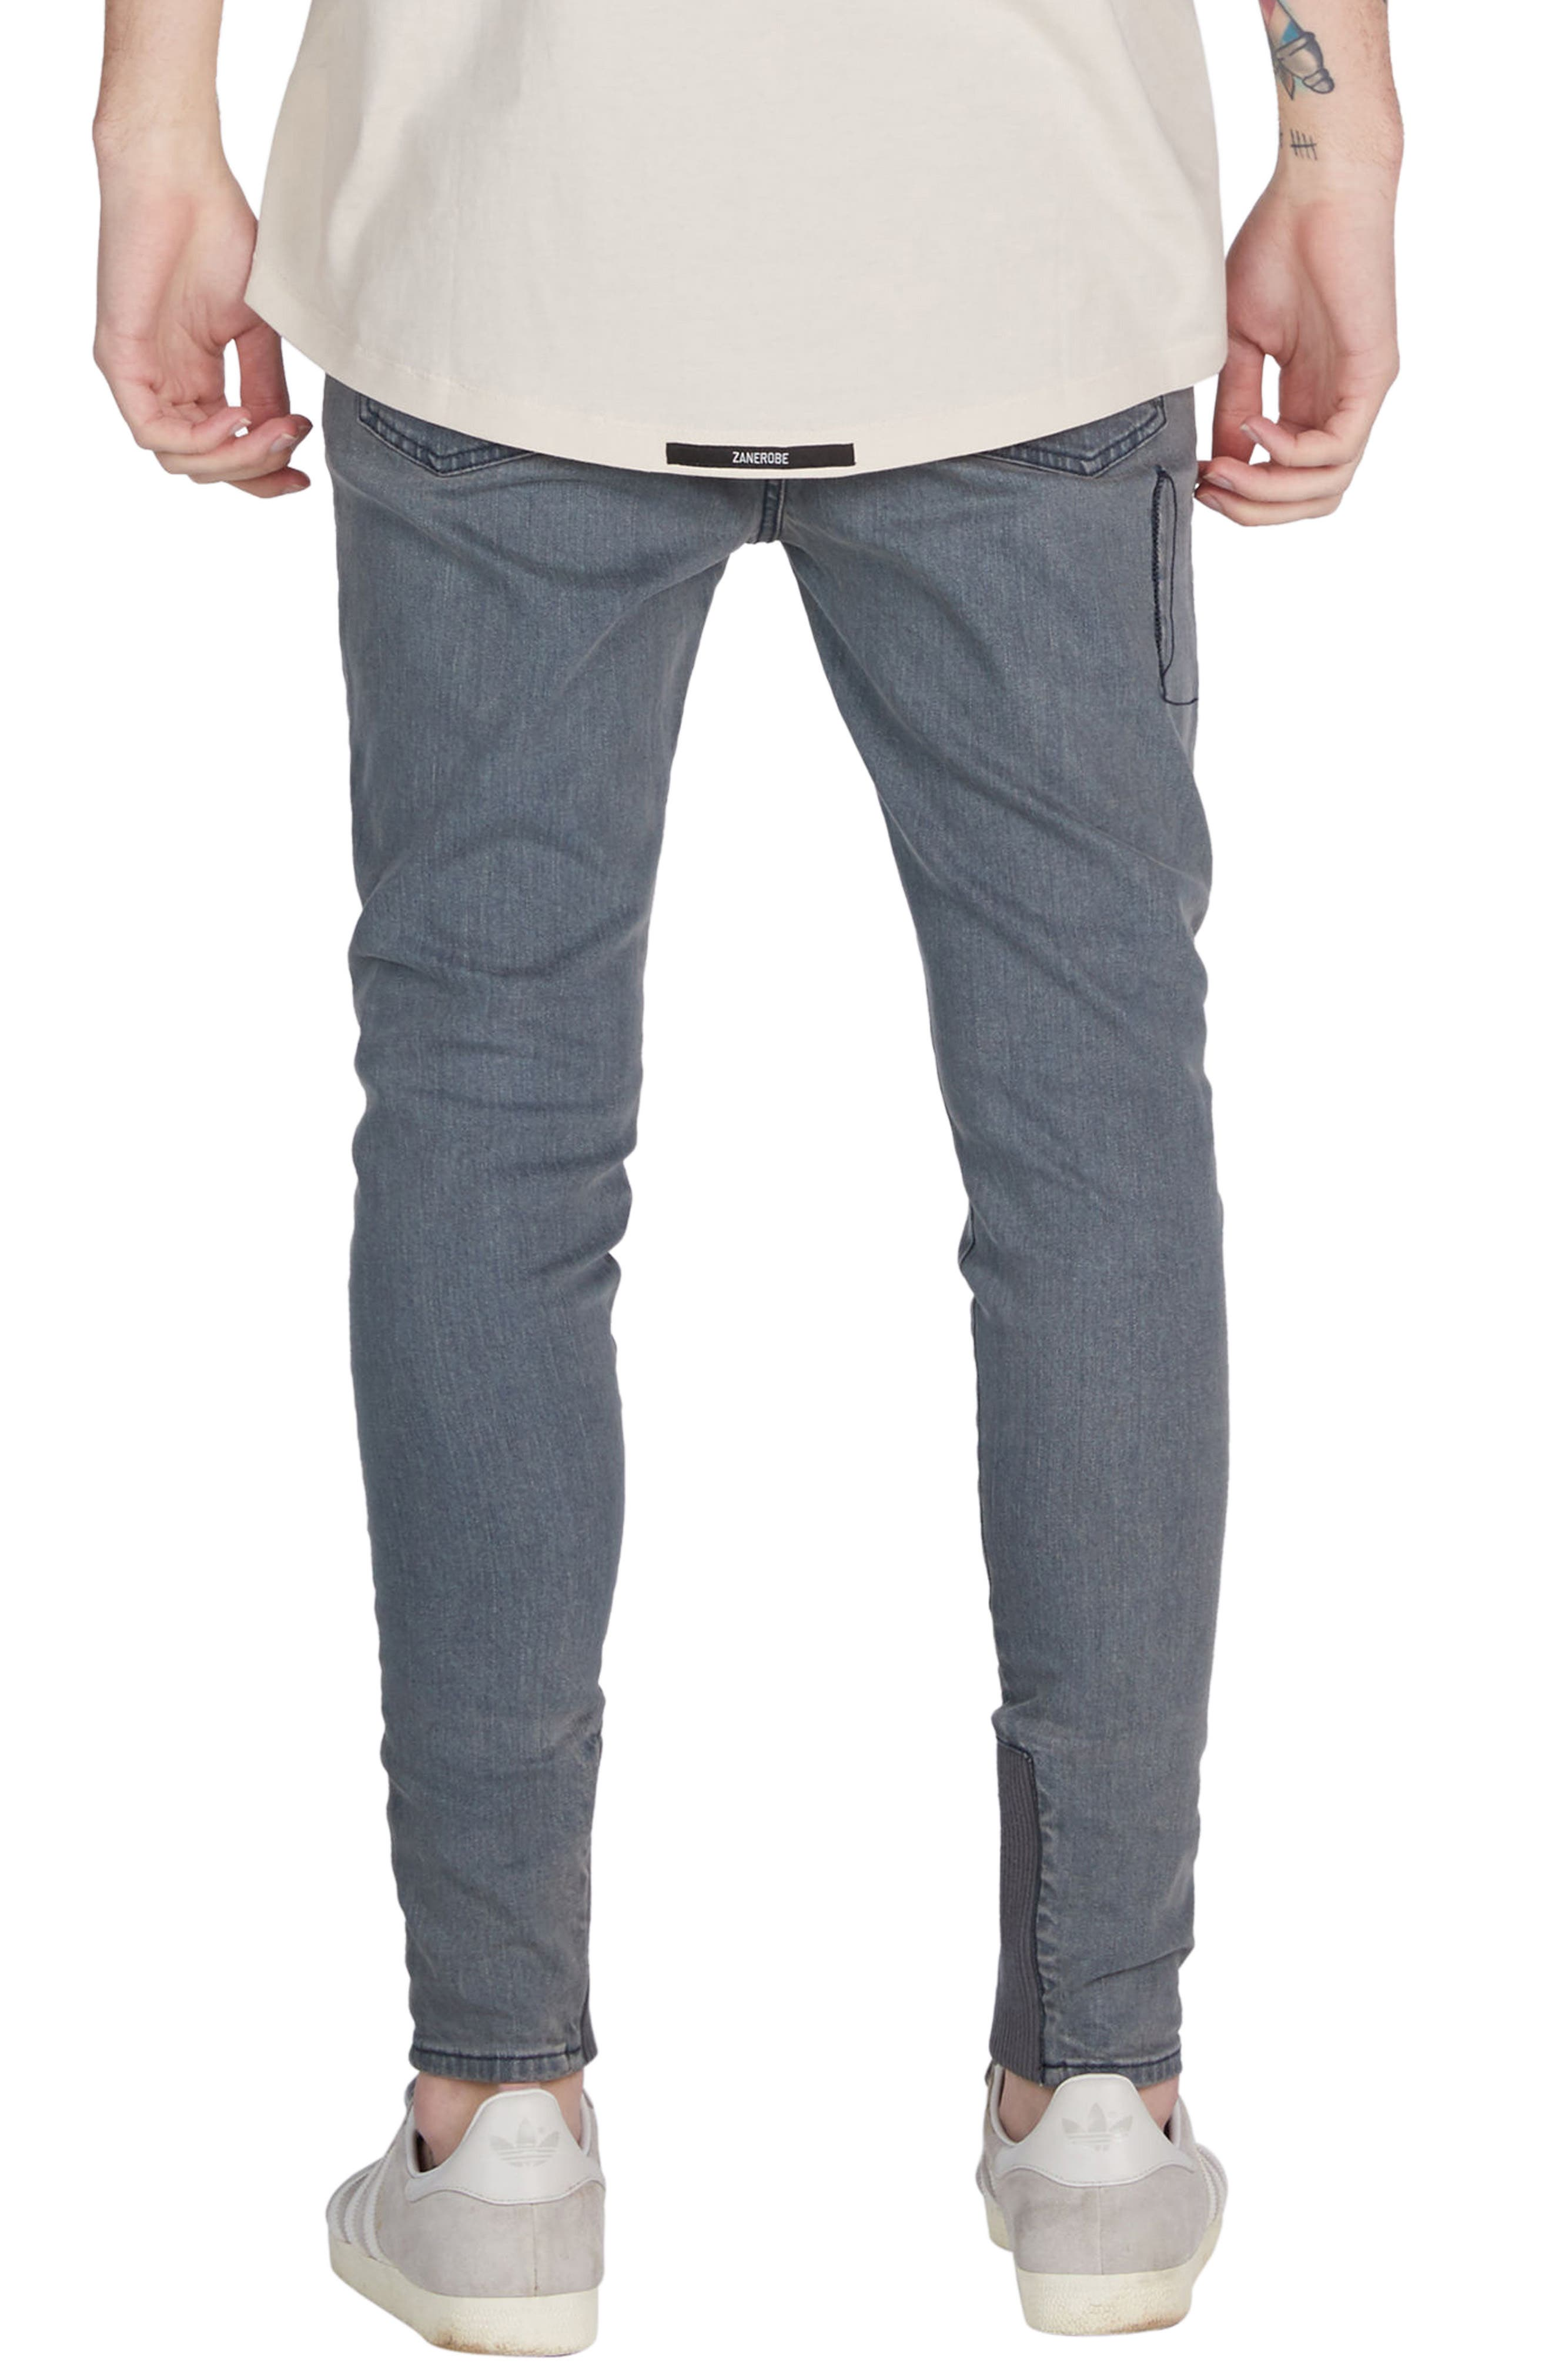 Sharpshot Slouchy Skinny Fit Denim Pants,                             Alternate thumbnail 2, color,                             420